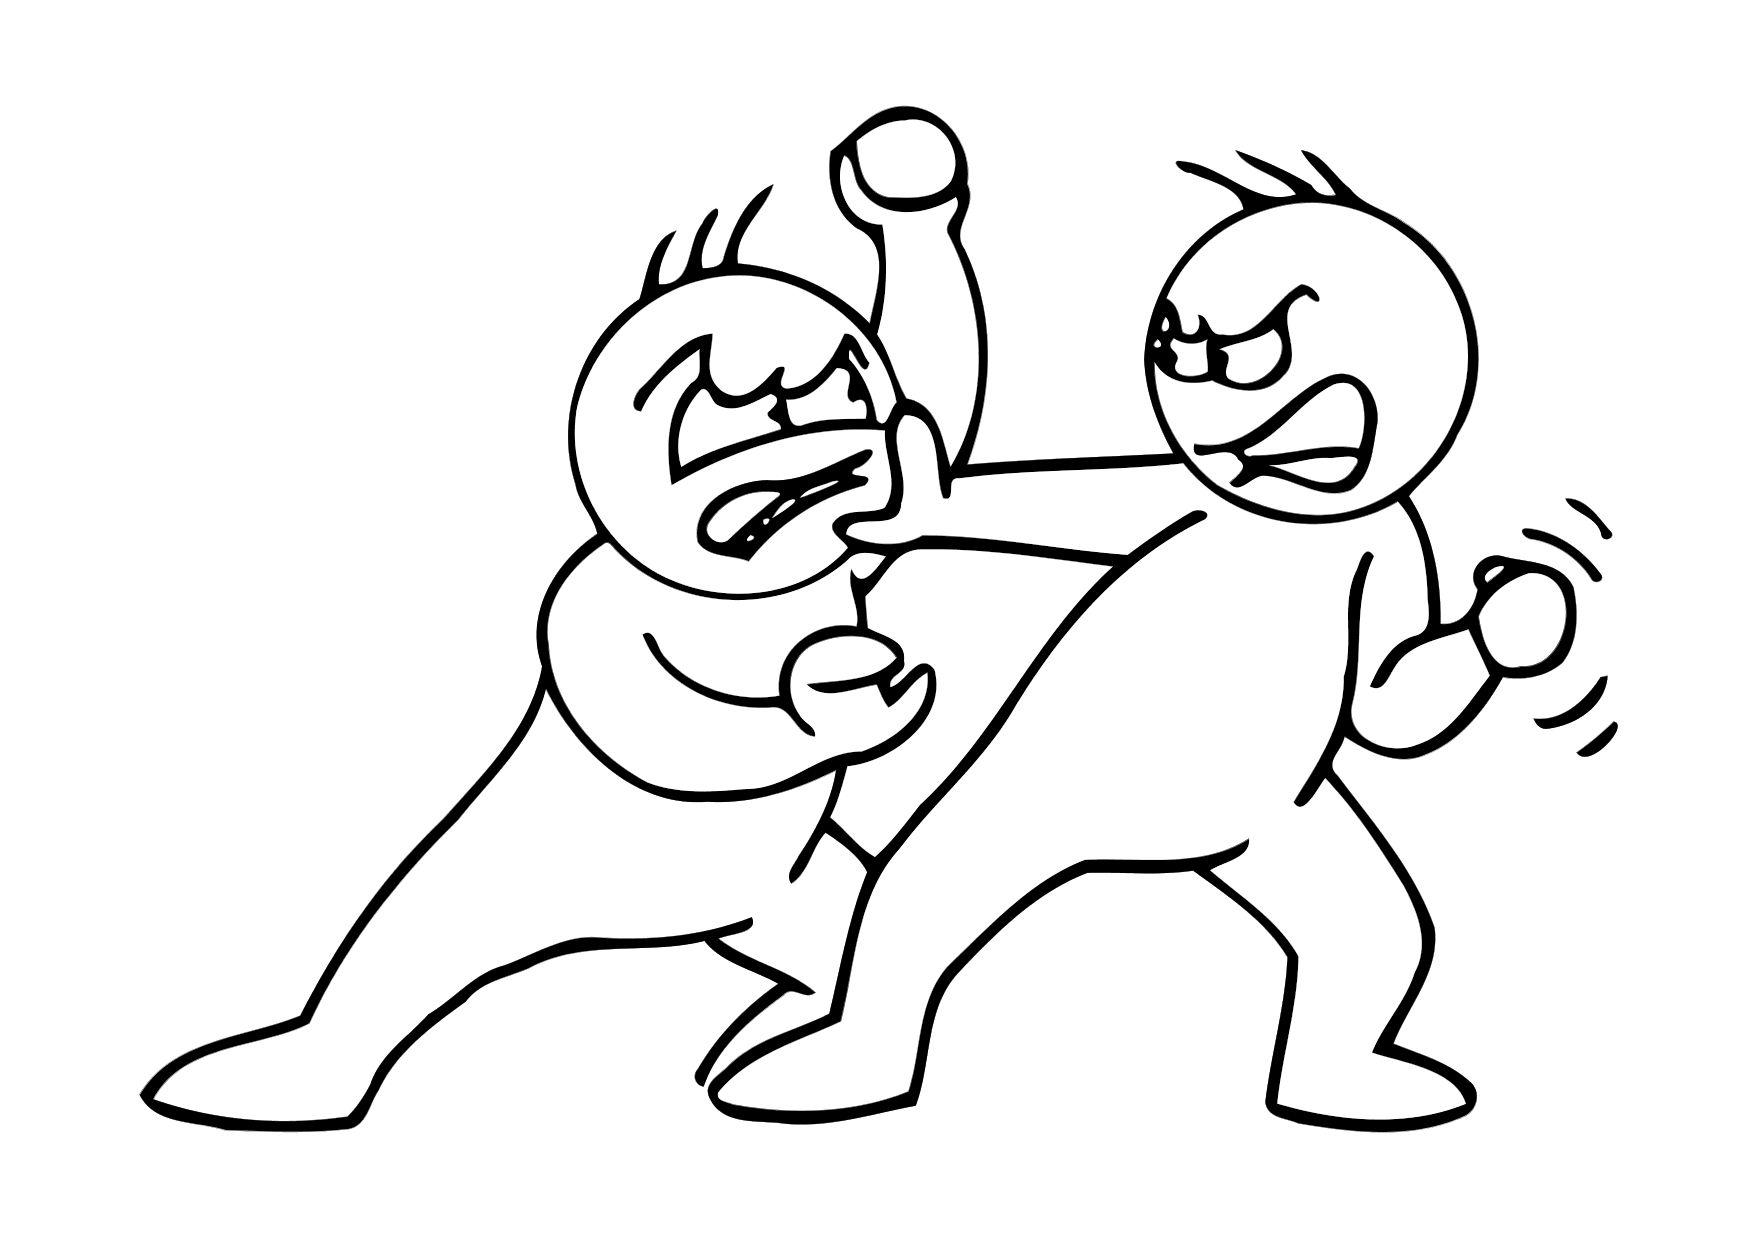 Coloring page fighting img 11662